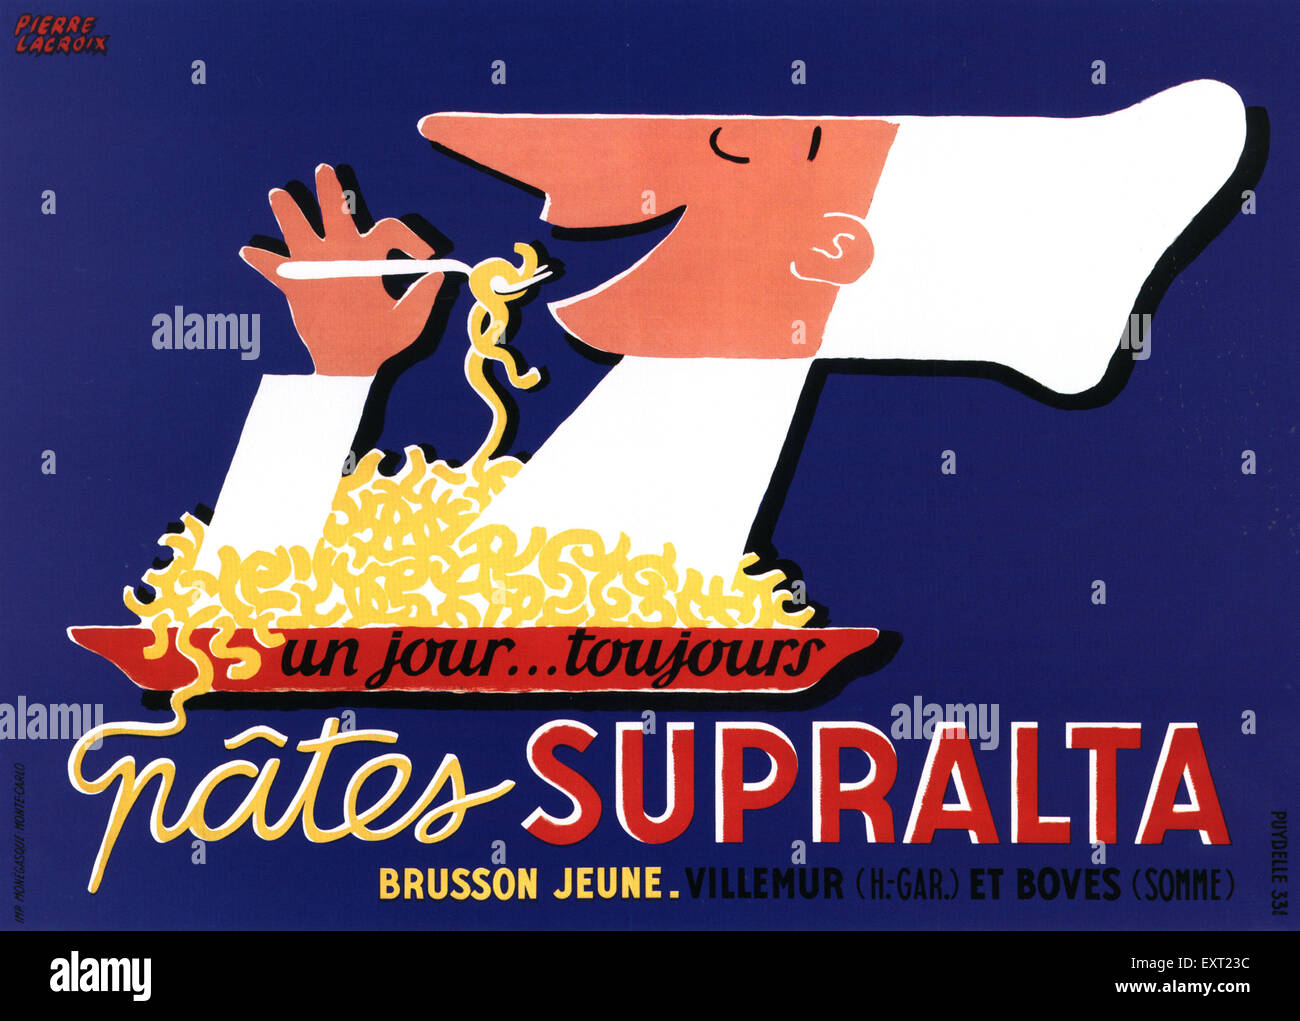 1930s Italy Supralta Poster - Stock Image